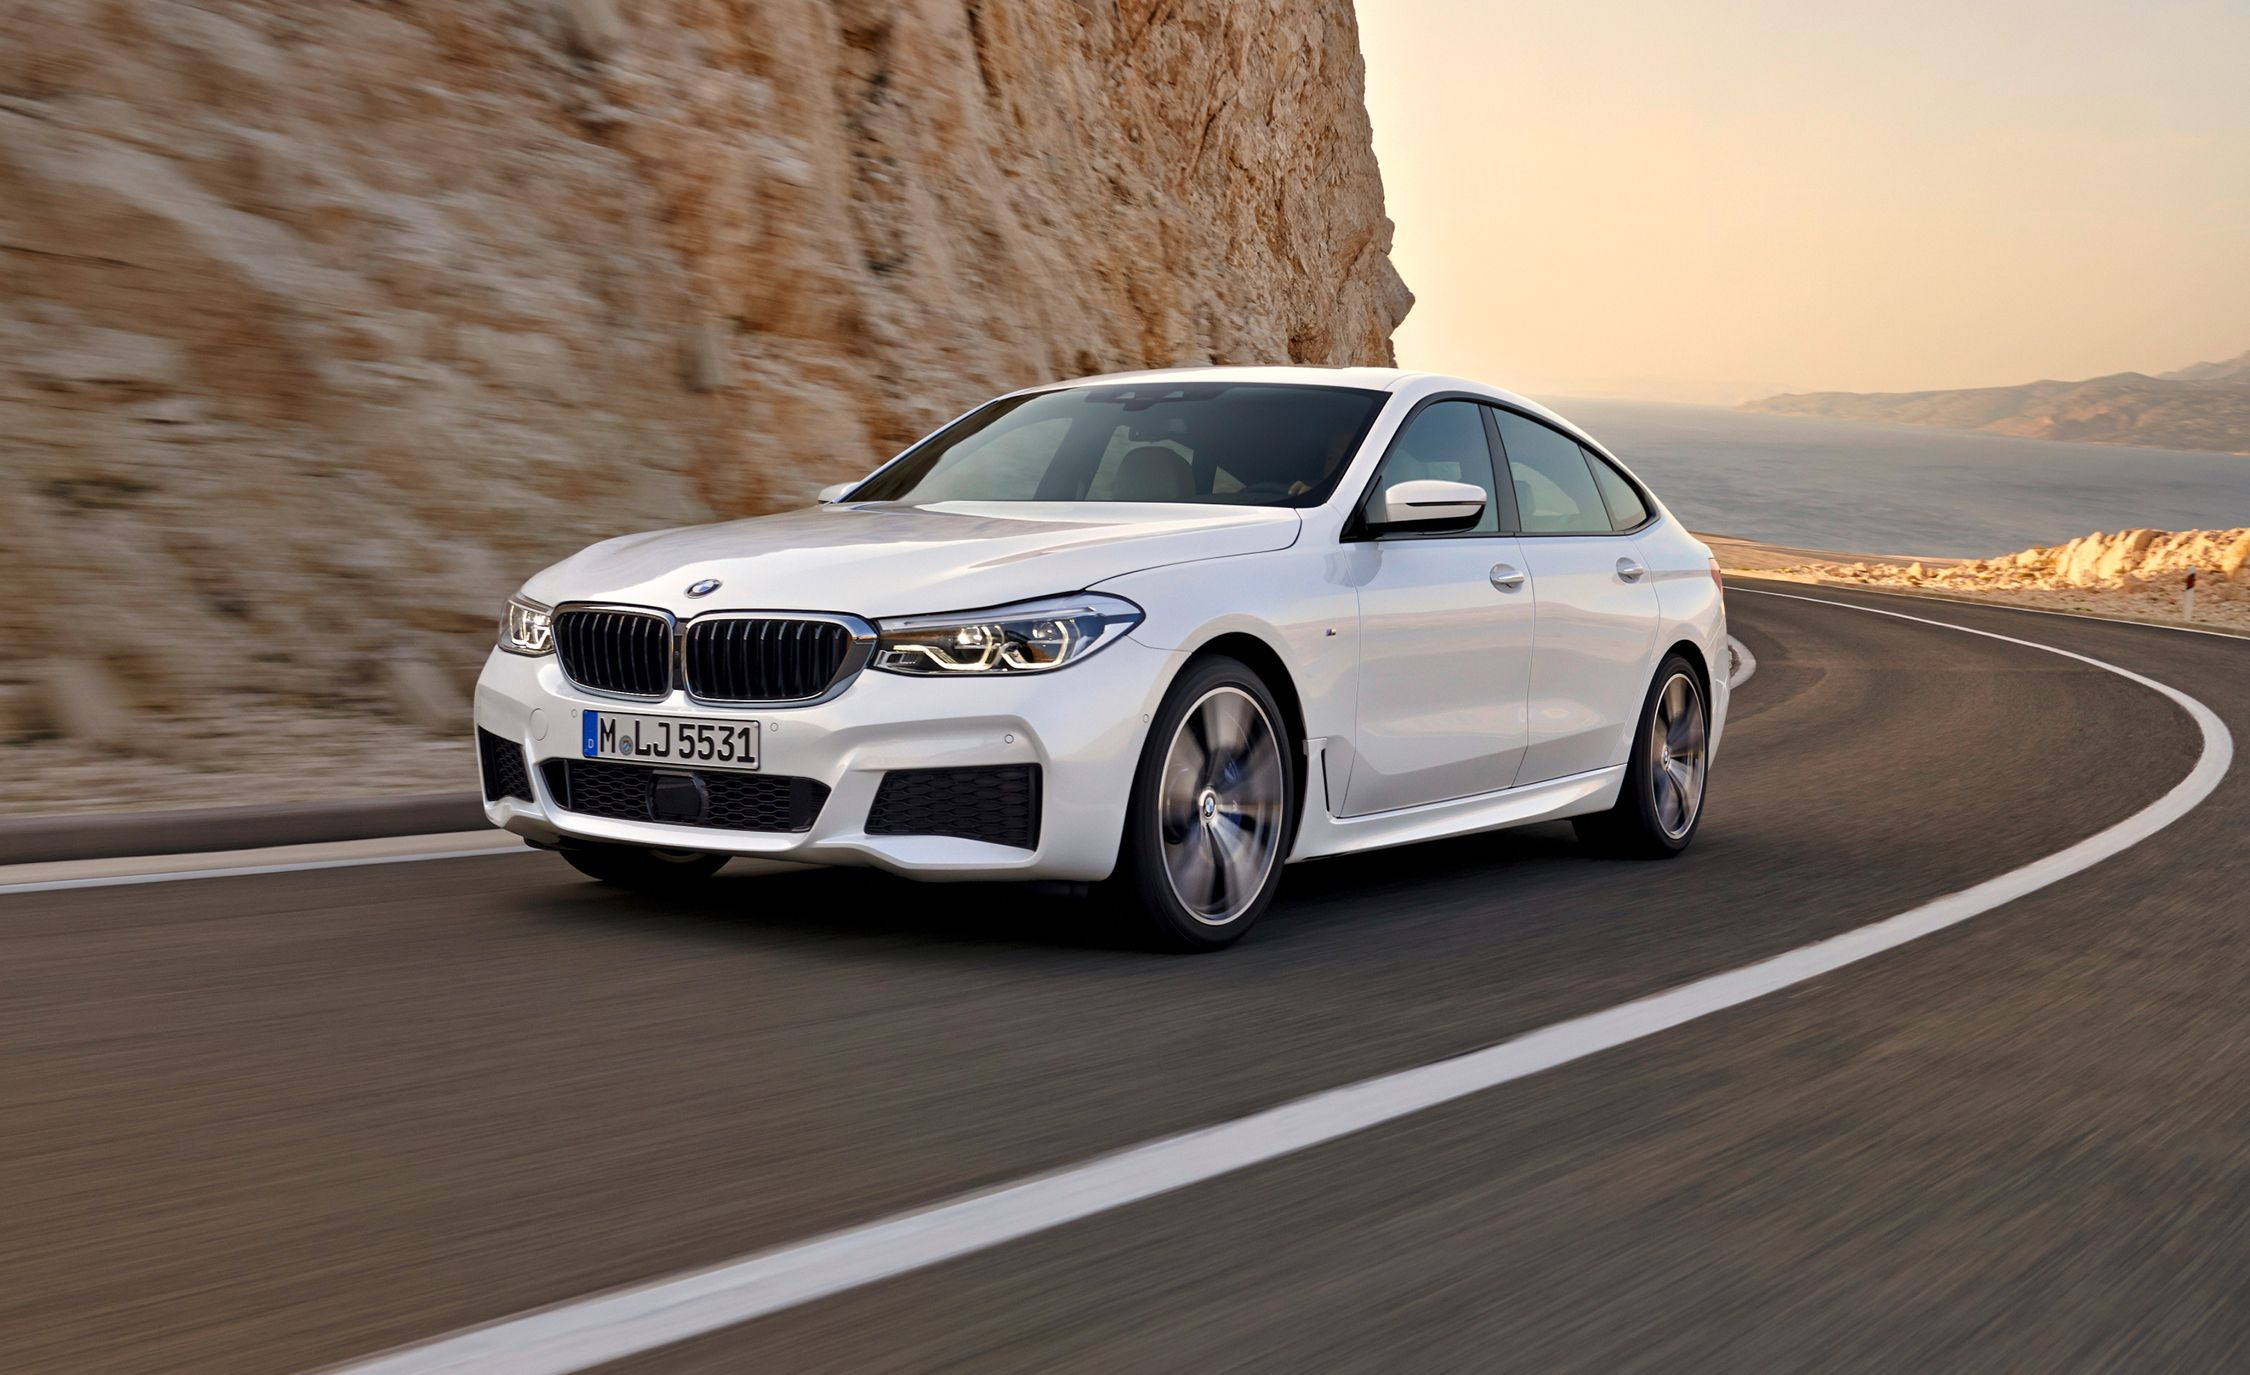 2018 BMW 6-series Gran Turismo Photos and Info | News | Car